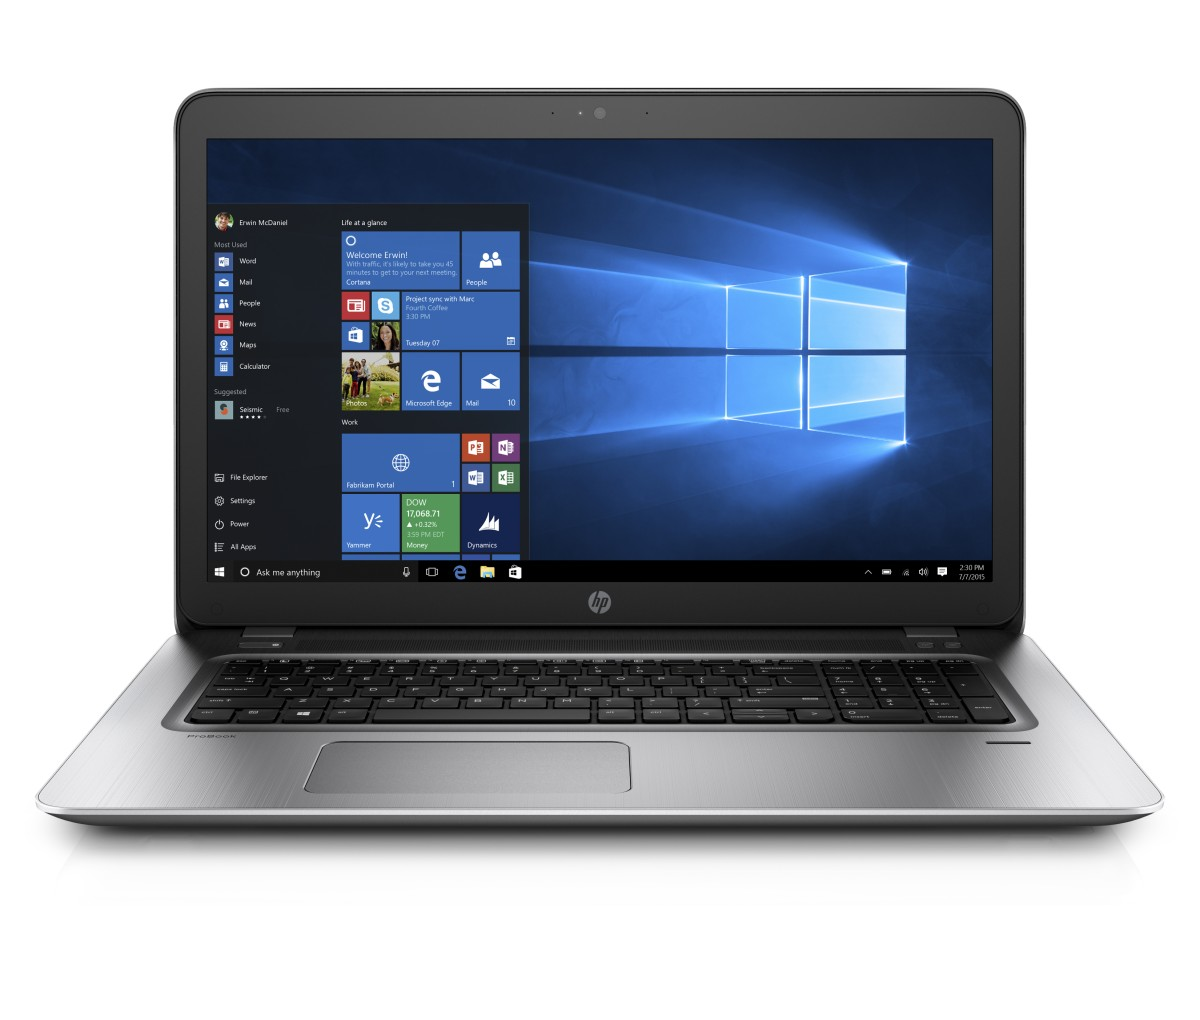 HP ProBook 470 G4 i7-7500U 17.3 FHD 8GB 256SSD+slot GF930MX DVD backlit FP W10P